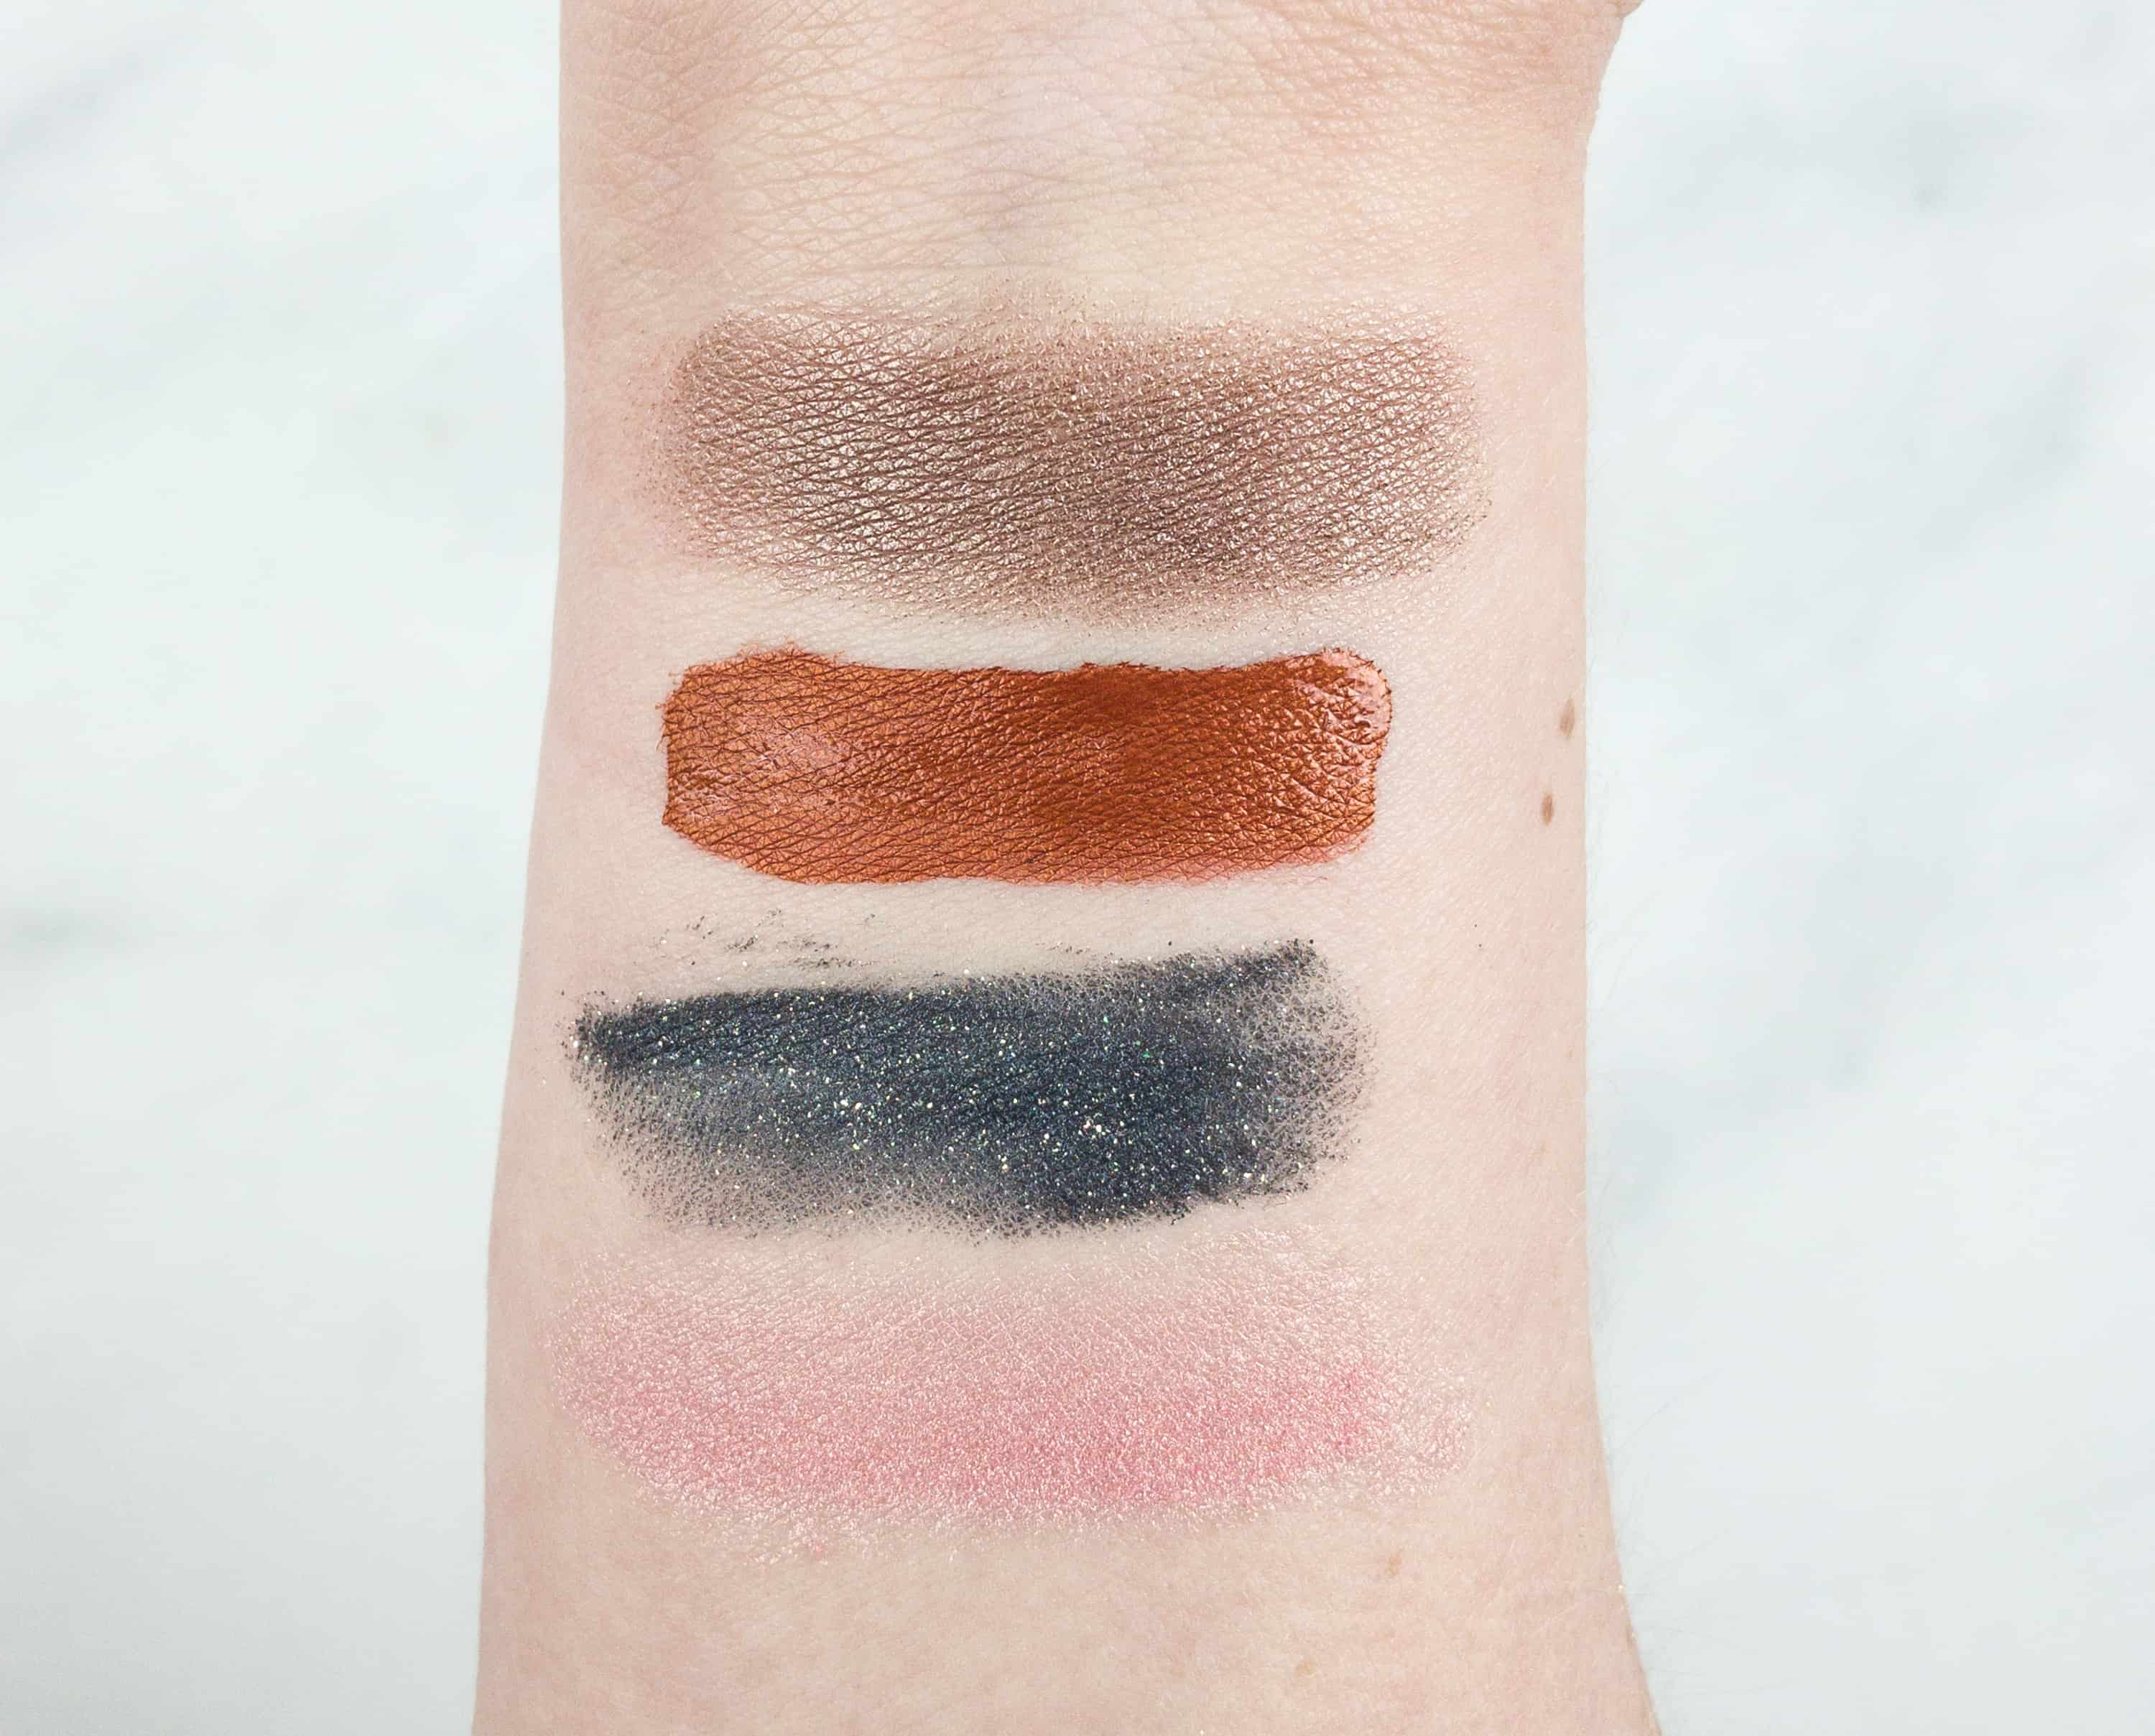 The swatches look really good. All of the colors seem to suit my complexion and you can make a bold but not too wild look. I love the gold specks of shimmer ...